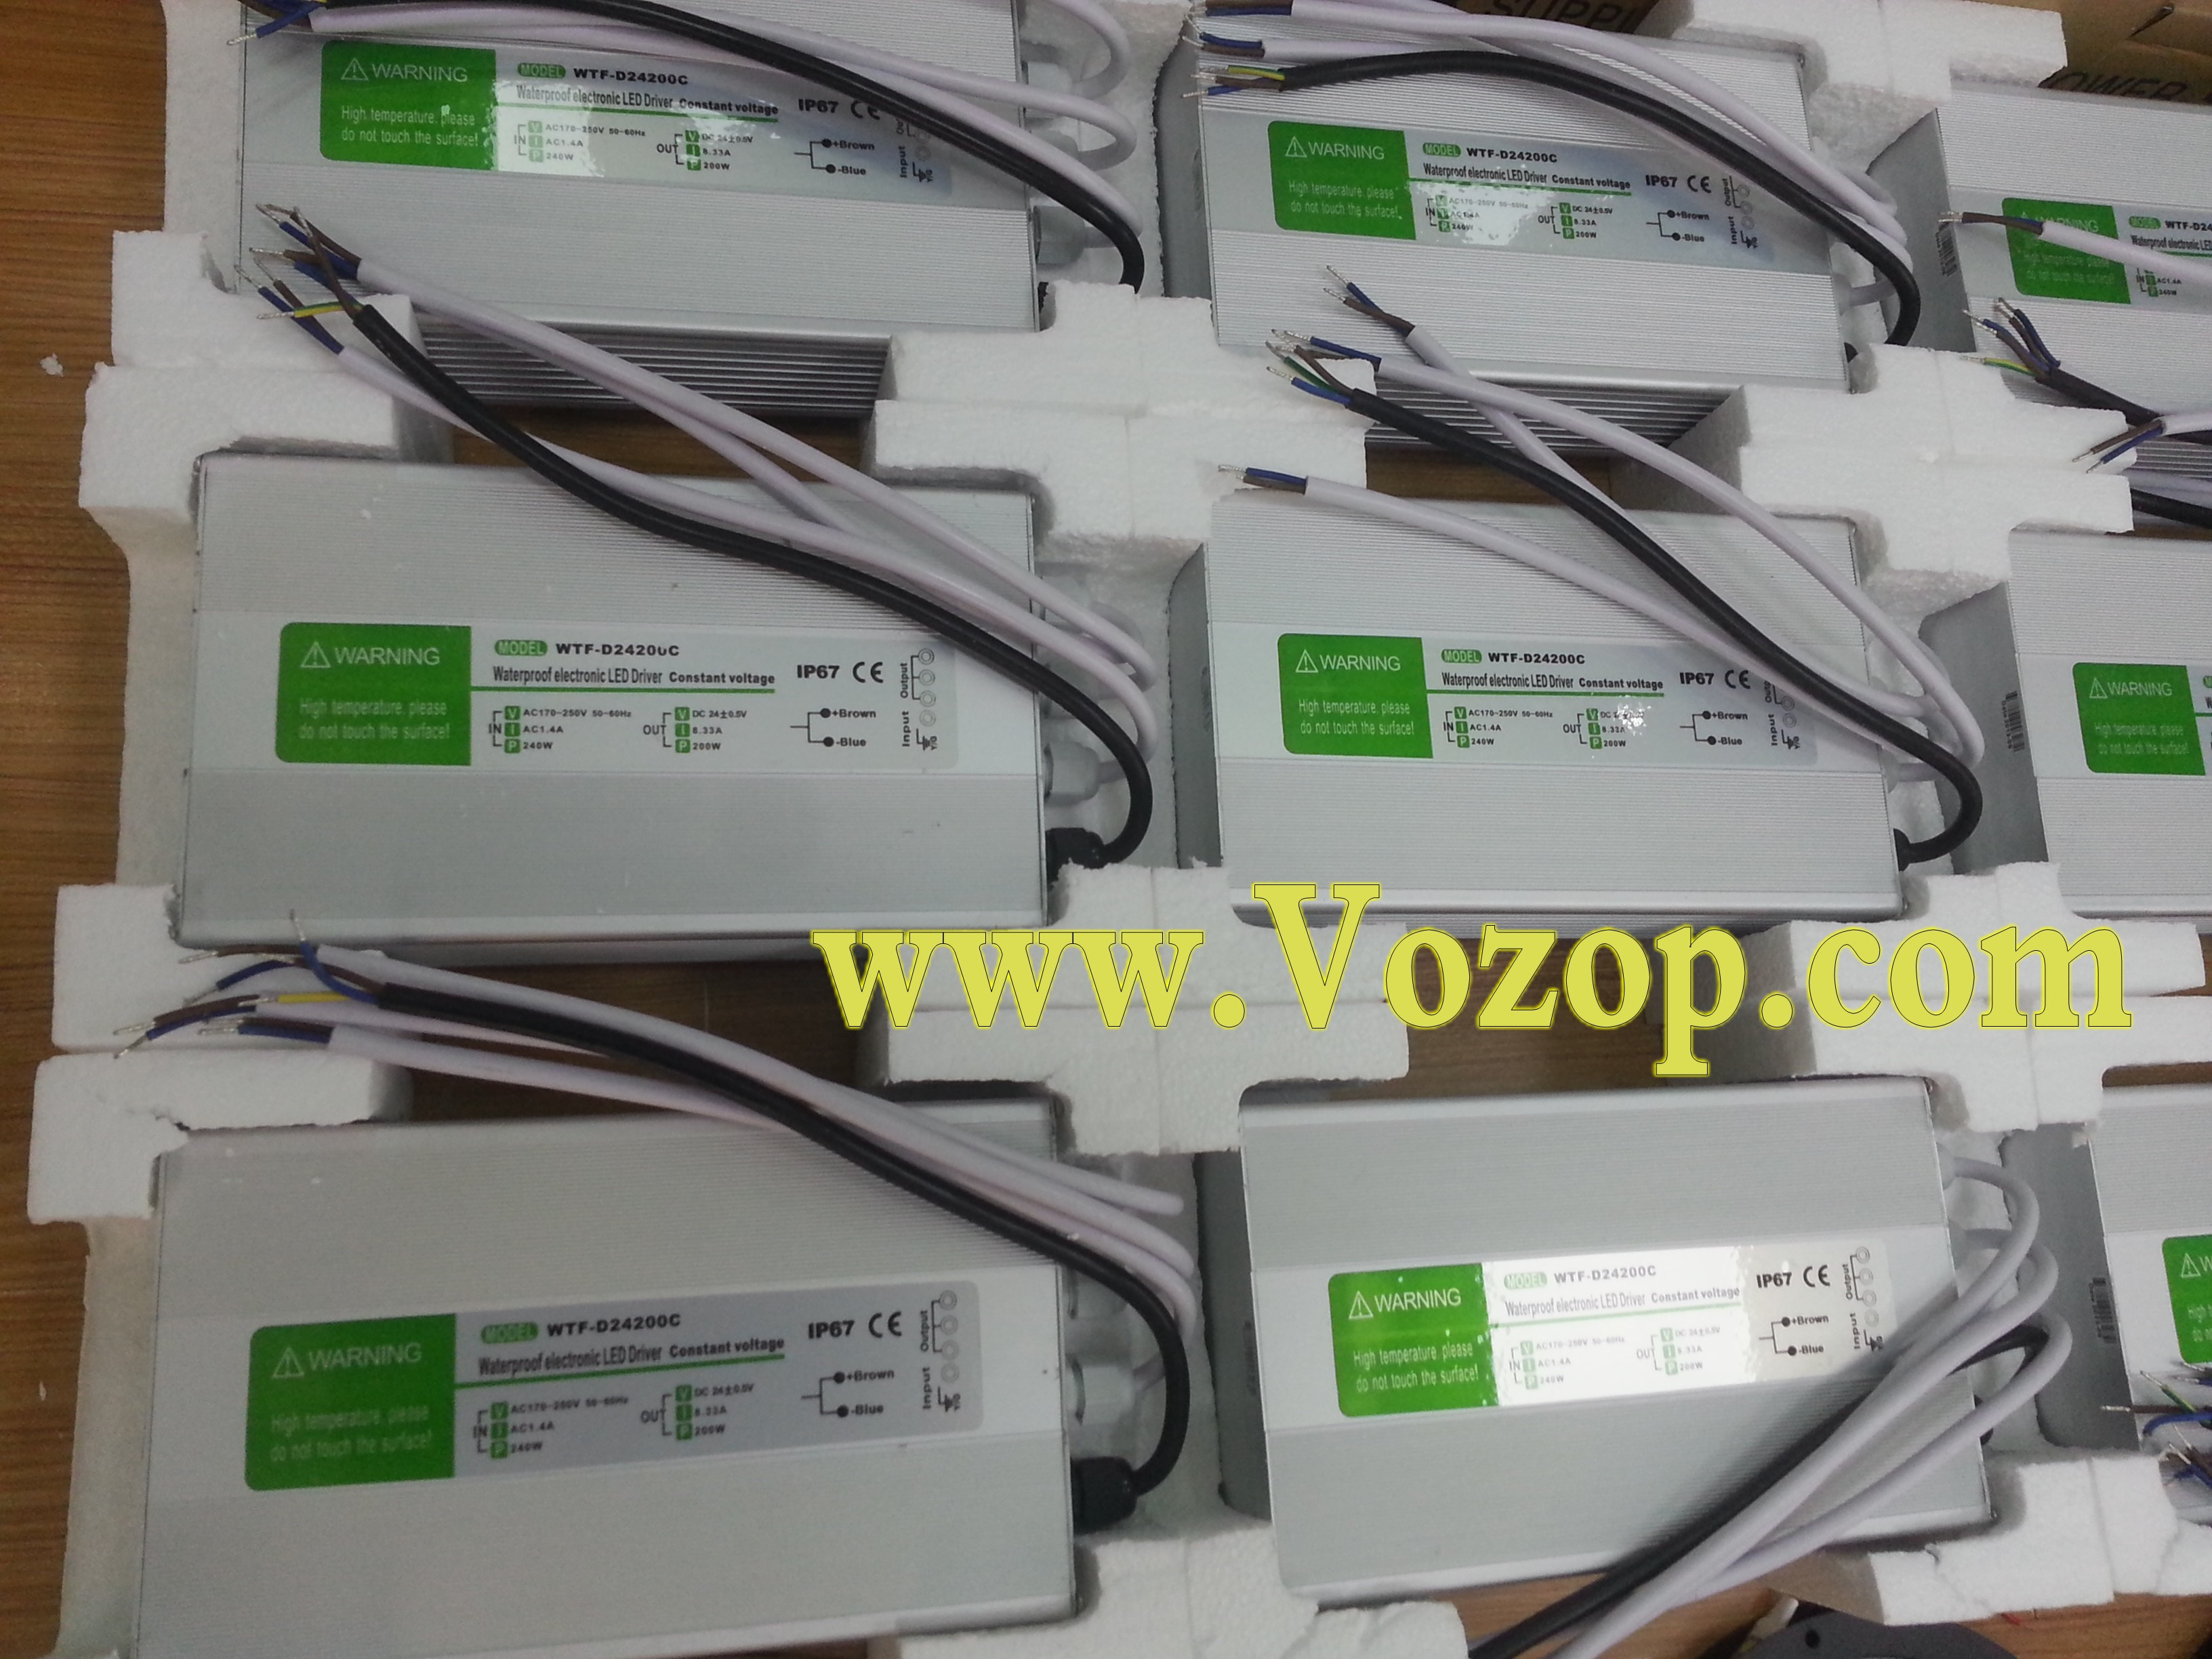 DC_12V_200W_Power_Supply_IP67_Waterproof_Transverter_power_driver_transformers